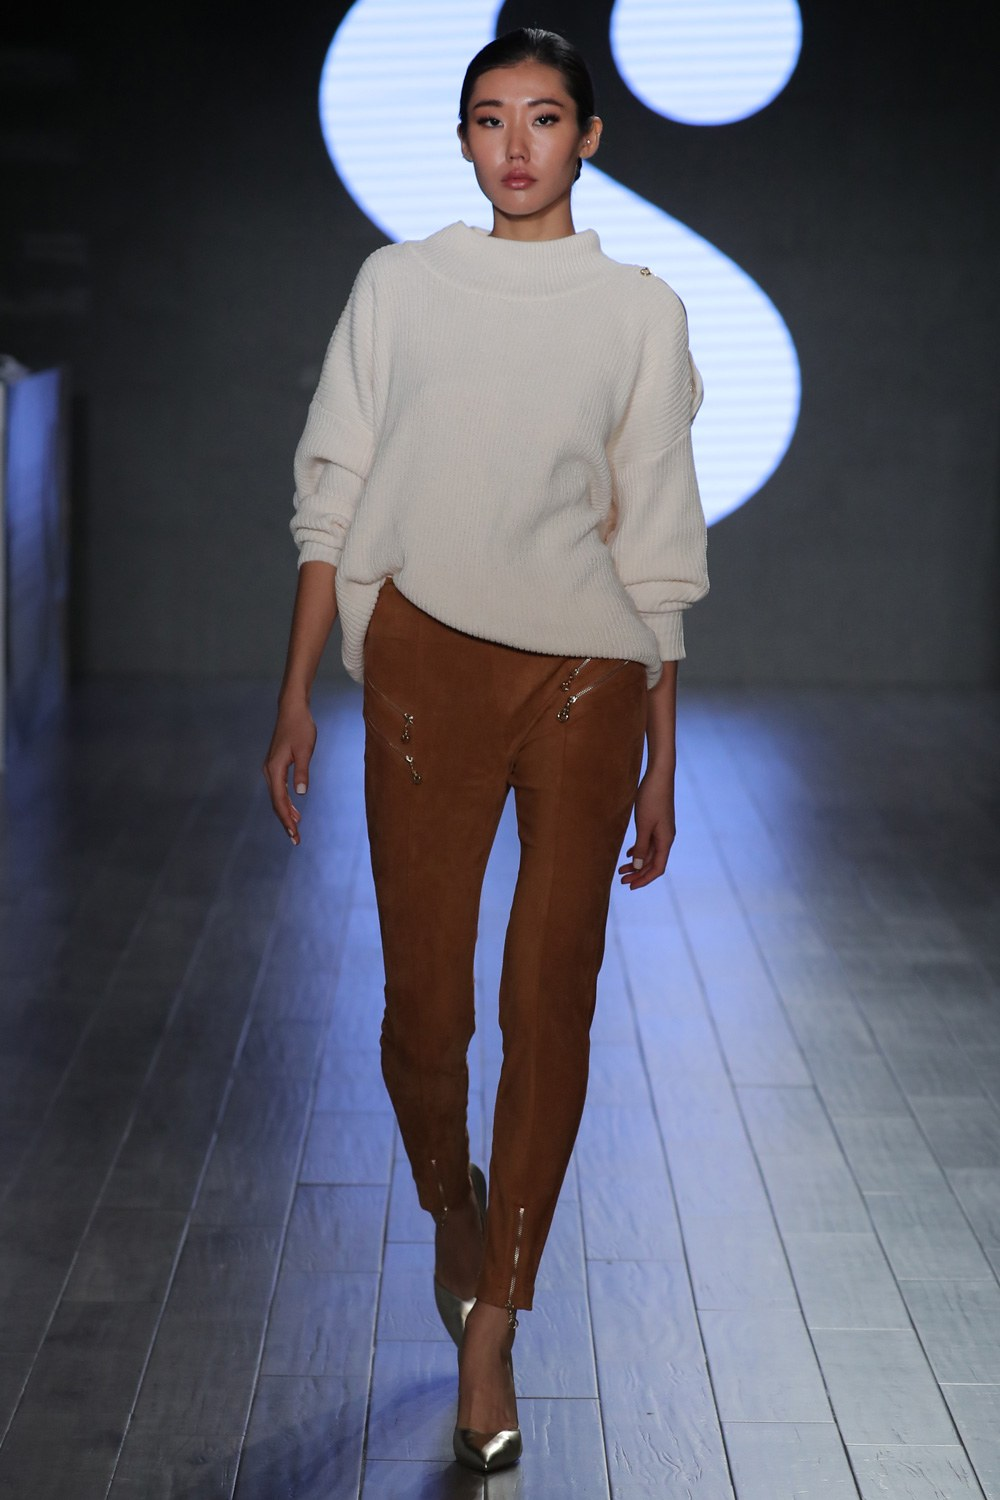 model on the runway wearing leggings and a sweater